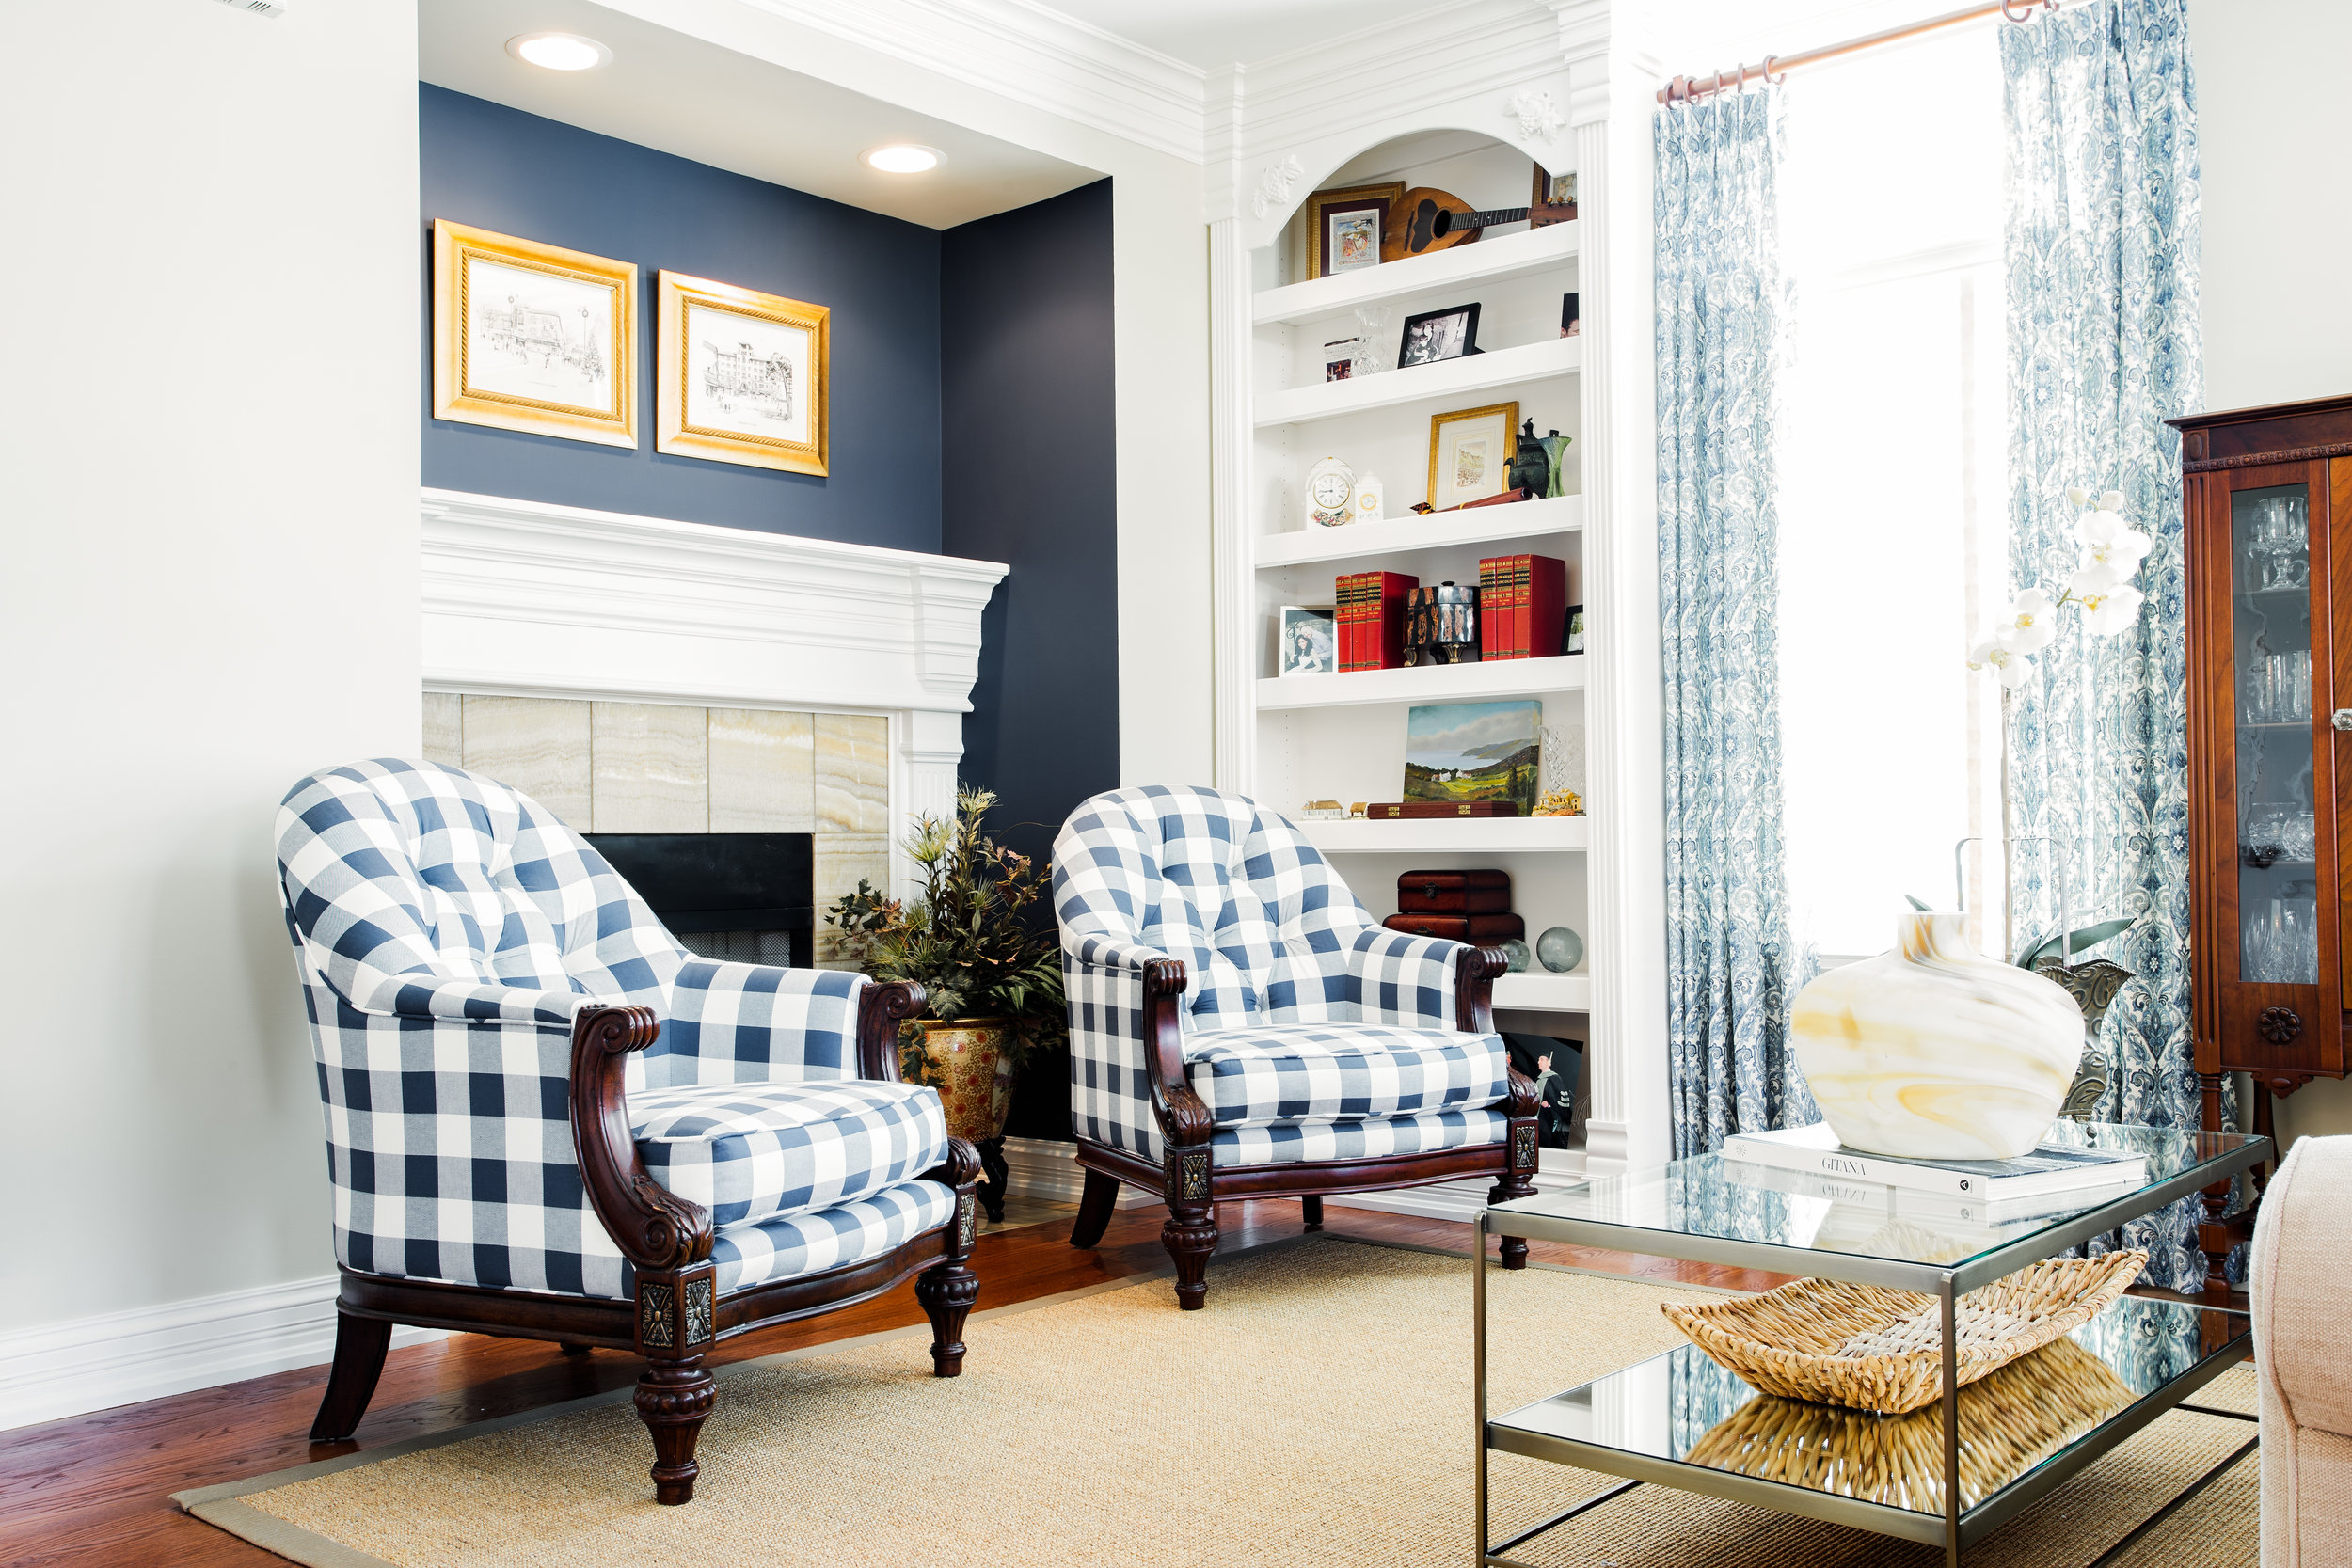 bb Interiors Interior Design